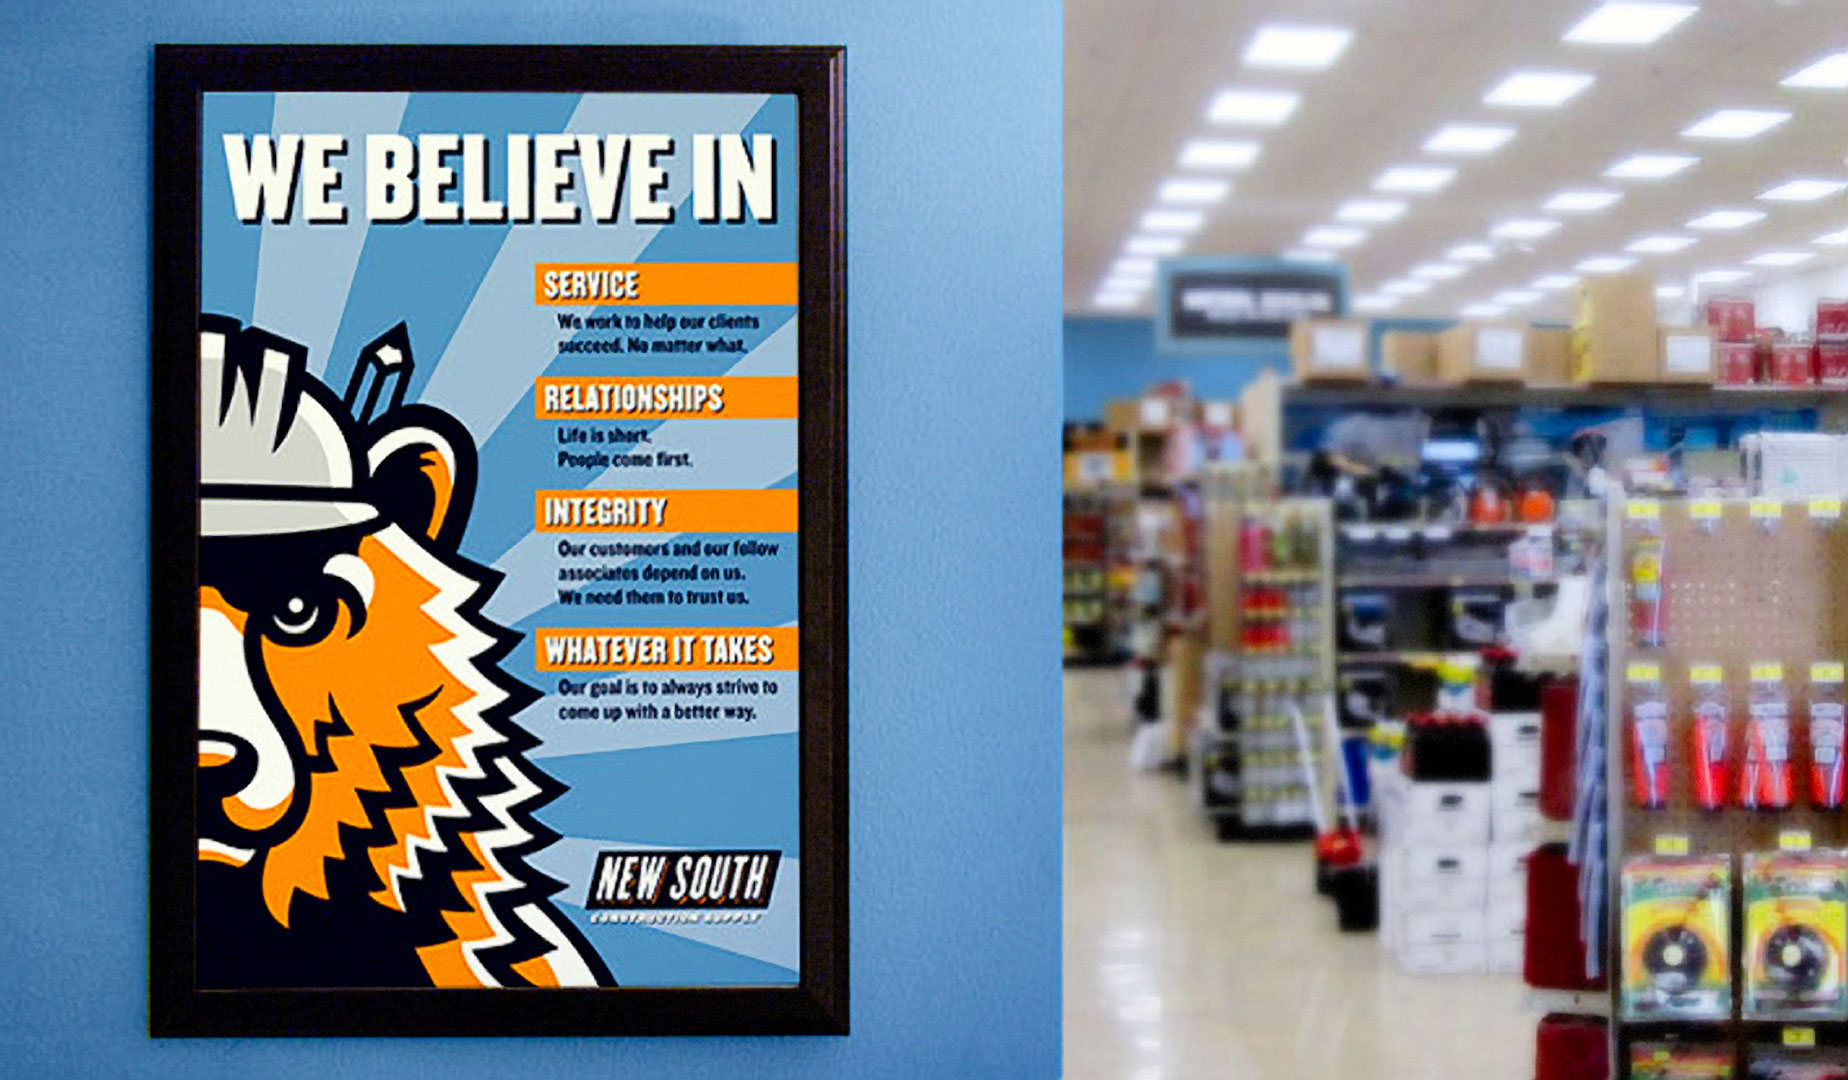 New South Construction Supply - Poster